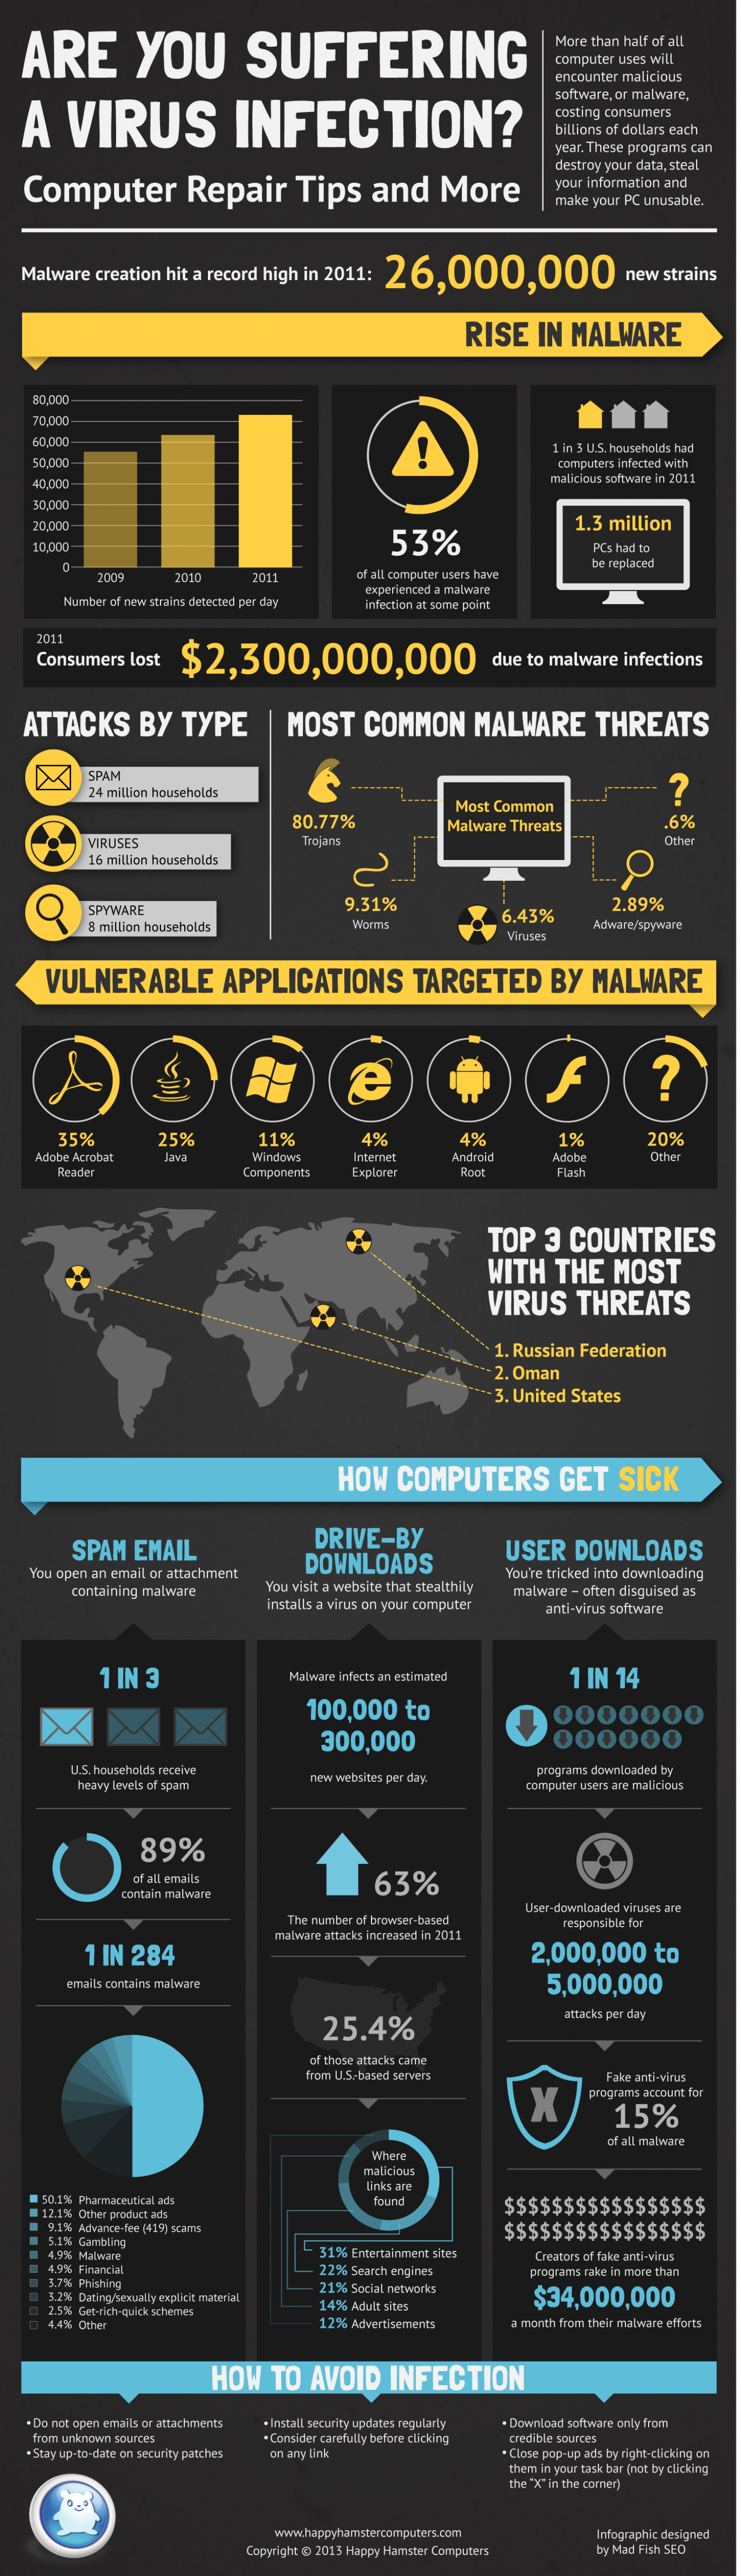 Are You Suffering a Virus Infection? Computer Repair Tips and More Infographic